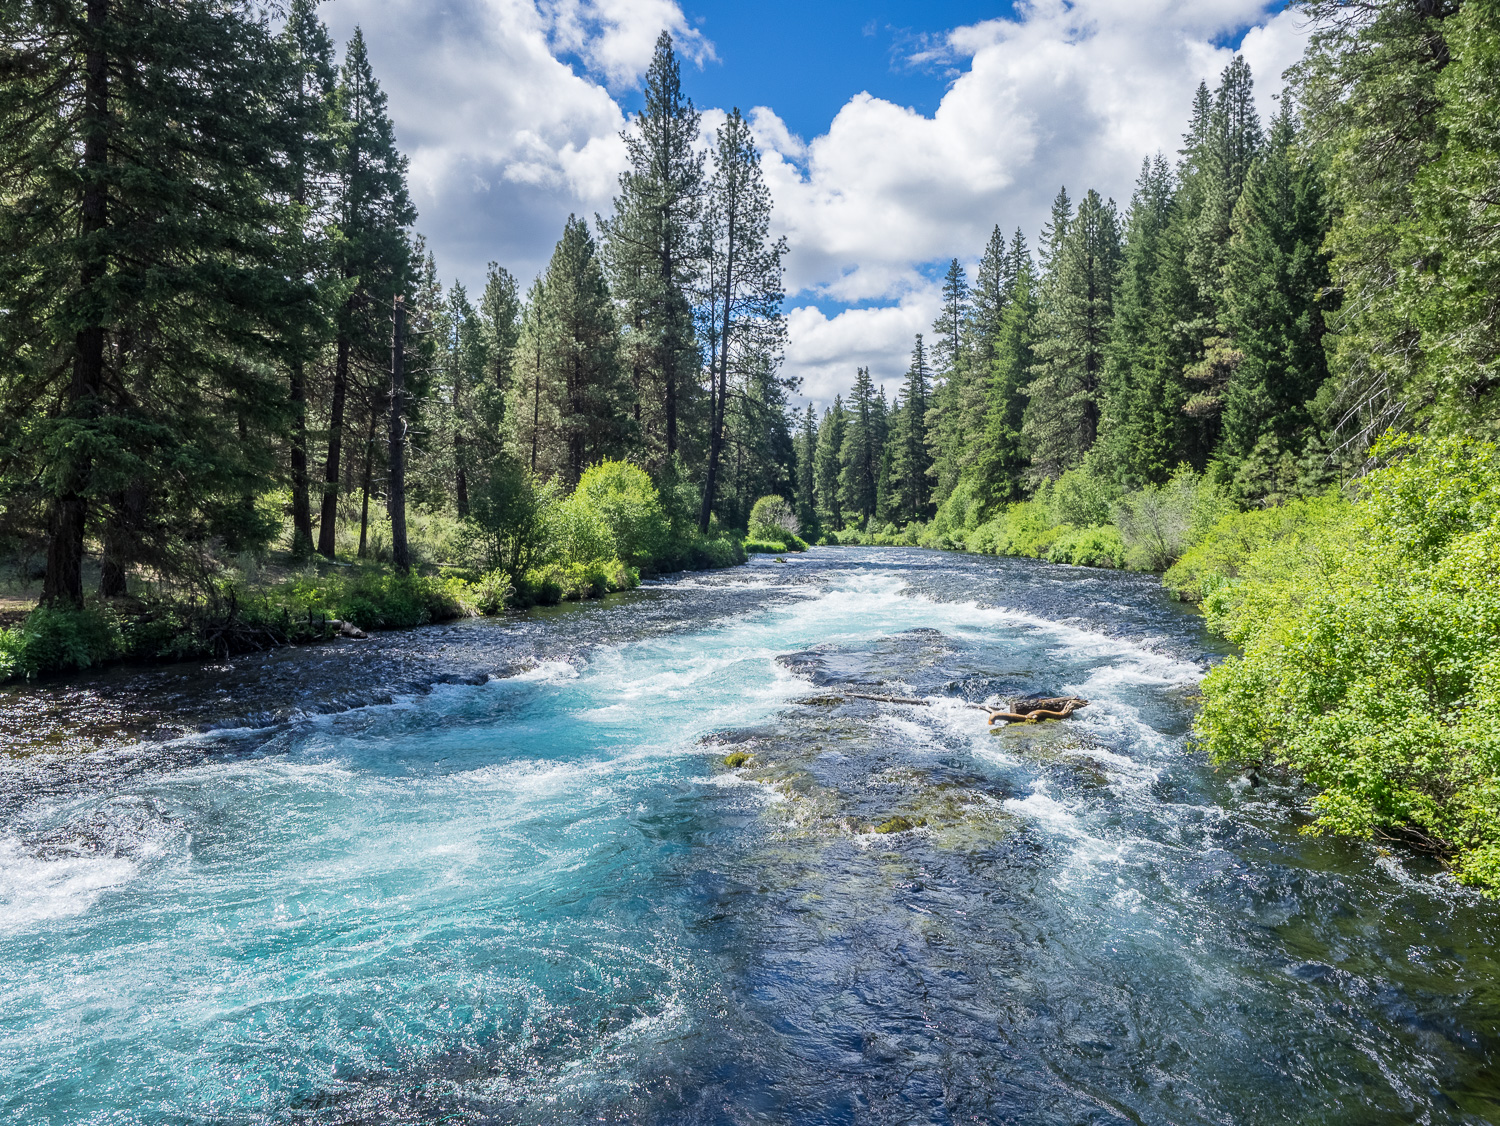 Metolius River at Wizard Falls